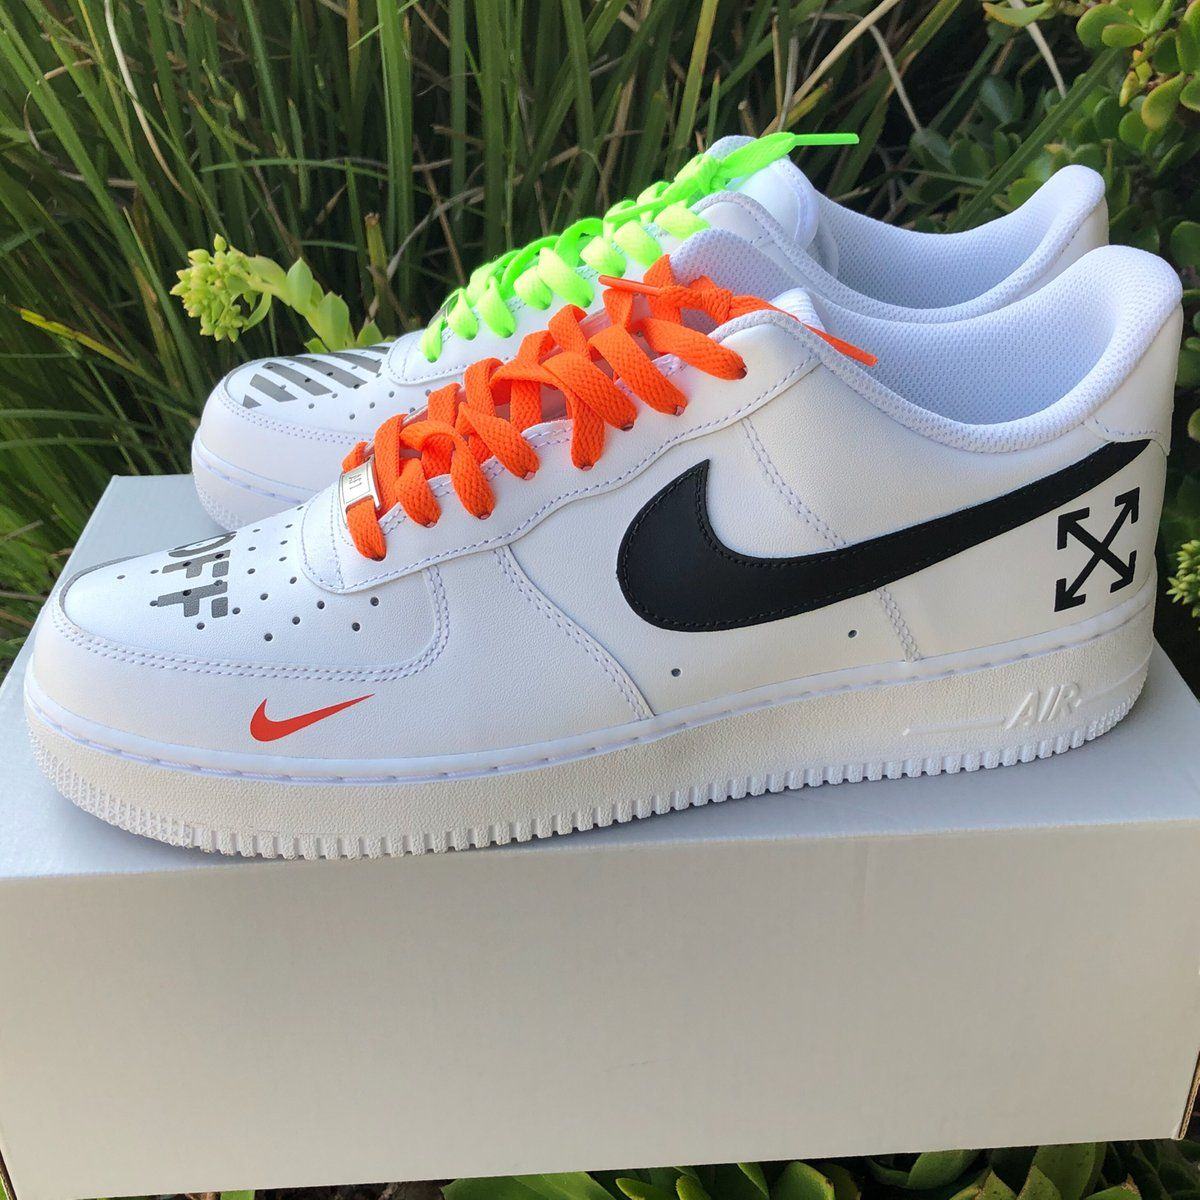 Air Force 1 Off White Inspired Customs 310 La Nike Shoes Air Force Custom Nike Shoes Sneakers